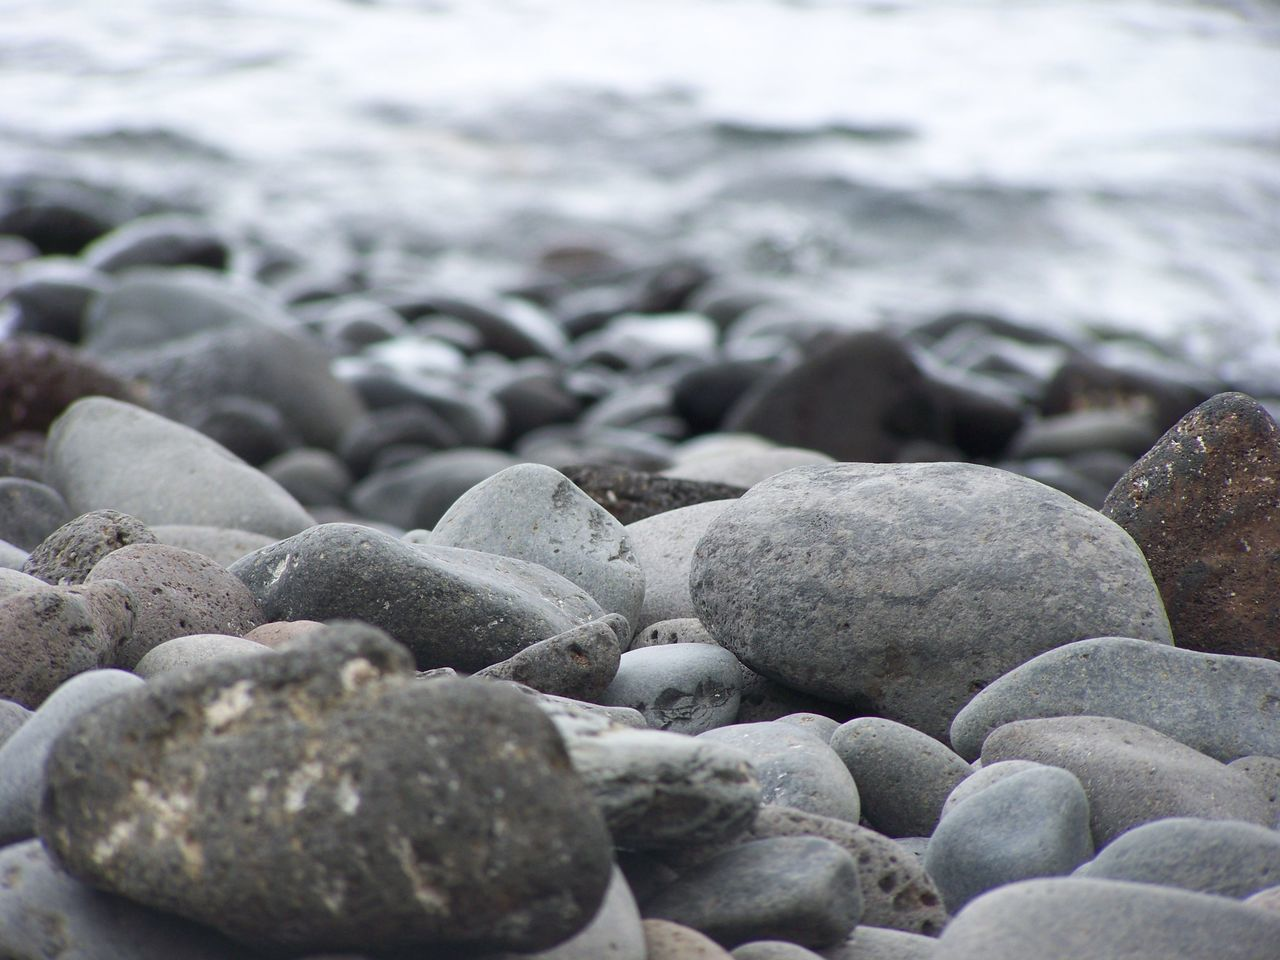 Beach Beauty In Nature Close-up Day Nature No People Outdoors Pebble Pebble Beach Pebble Beach Pebbles Shore Stones Stones & Water Stones And Pebbles Water The Great Outdoors - 2017 EyeEm Awards